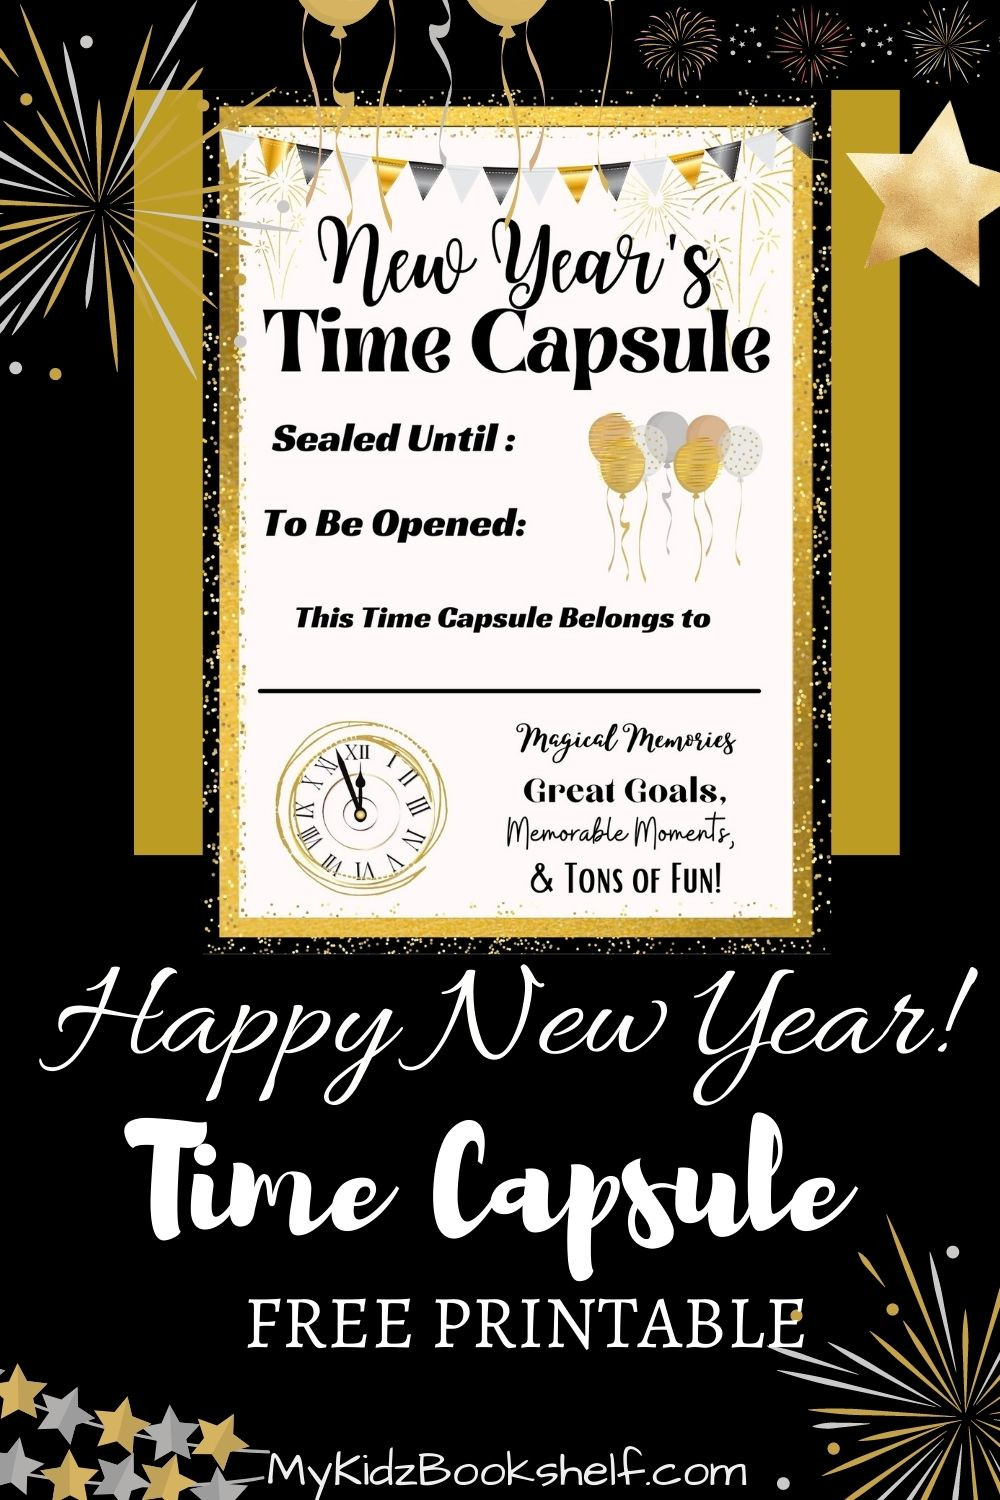 New Year's Time Capsule Pinterest Pin free printable